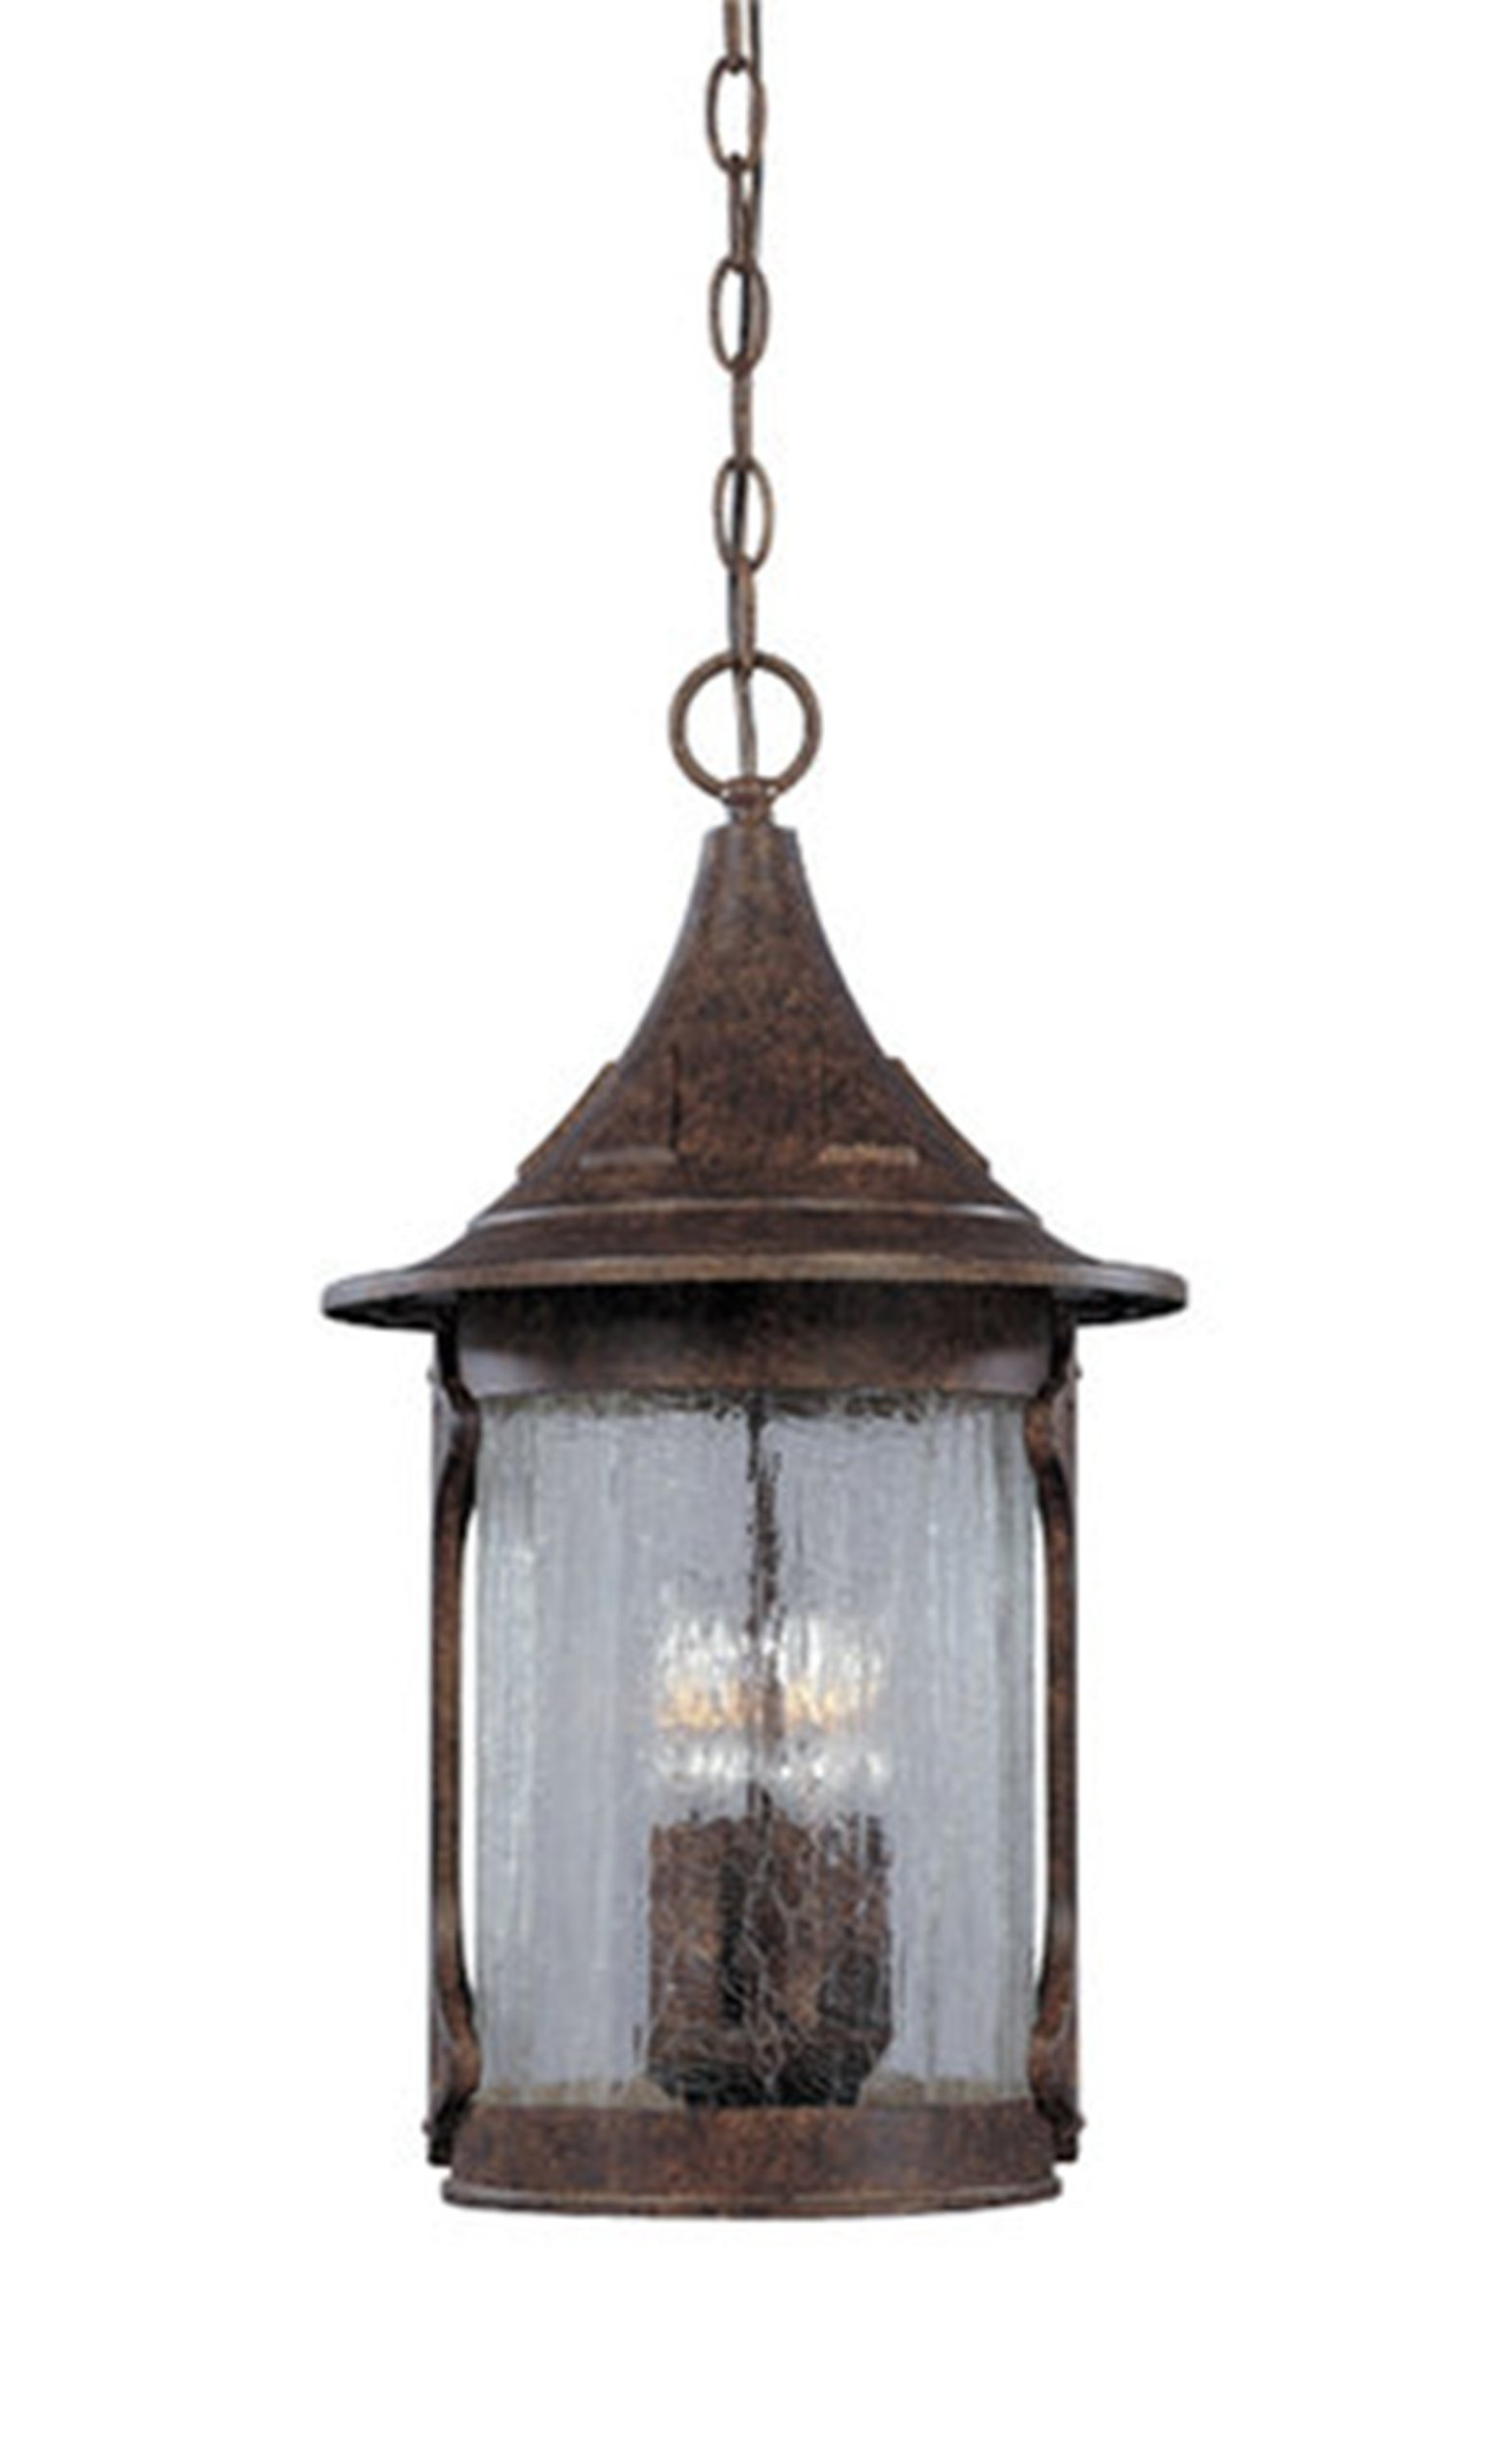 Designers Fountain 20934-CHN Canyon Lake Hanging Lanterns, Chestnut by Designers Fountain